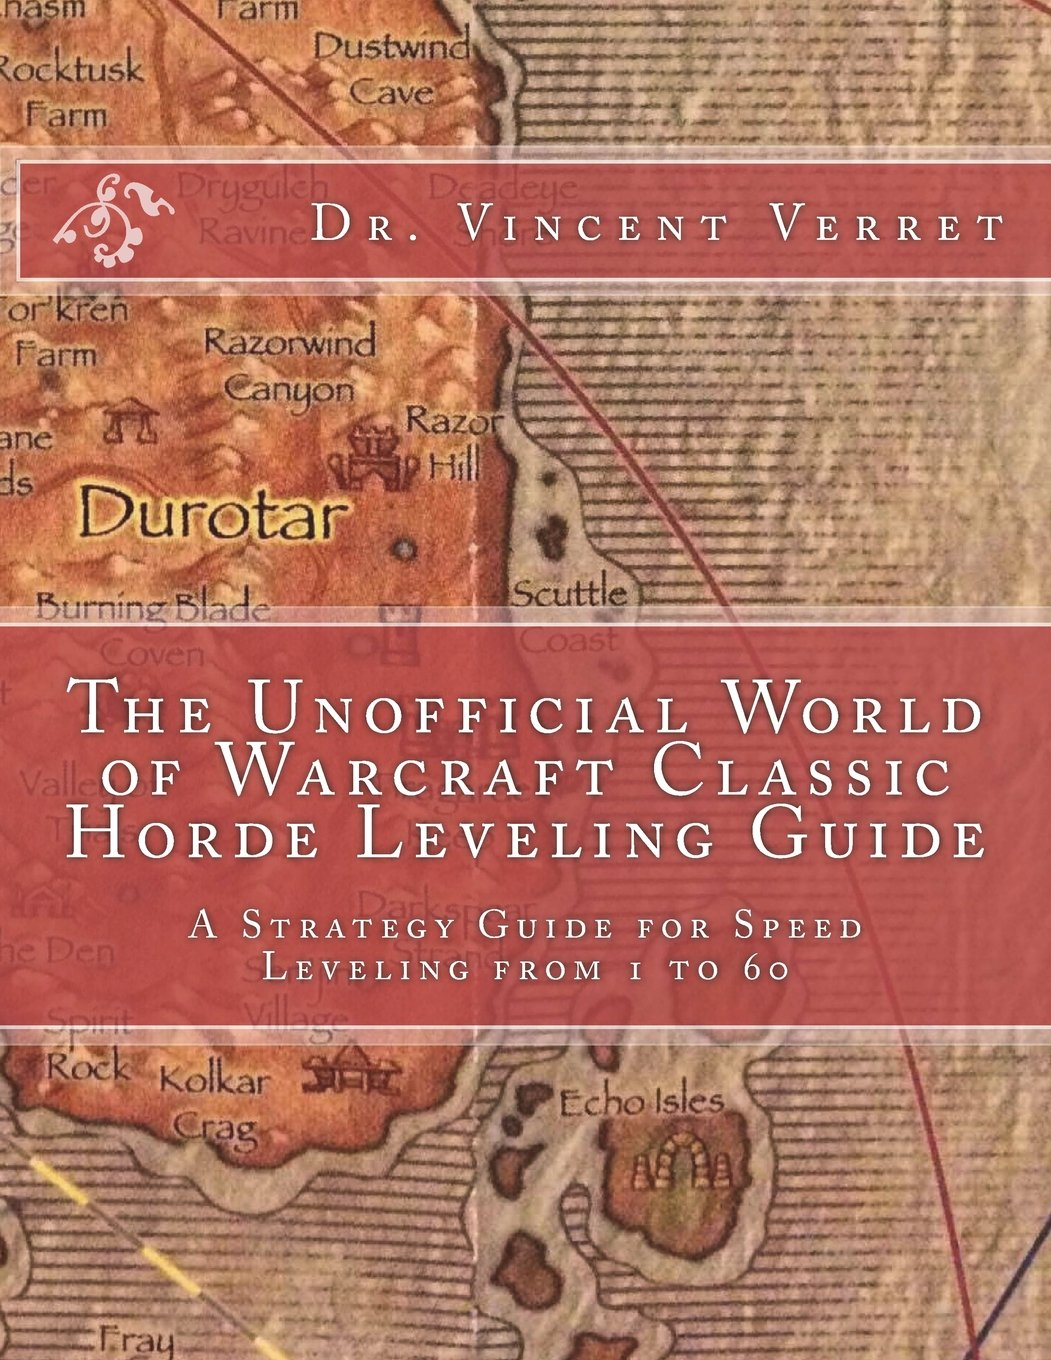 Download The Unofficial World of Warcraft Classic Horde Leveling Guide: A Strategy Guide for Speed Leveling from 1 to 60 (WoW Classic Unofficial Game Guides) ebook